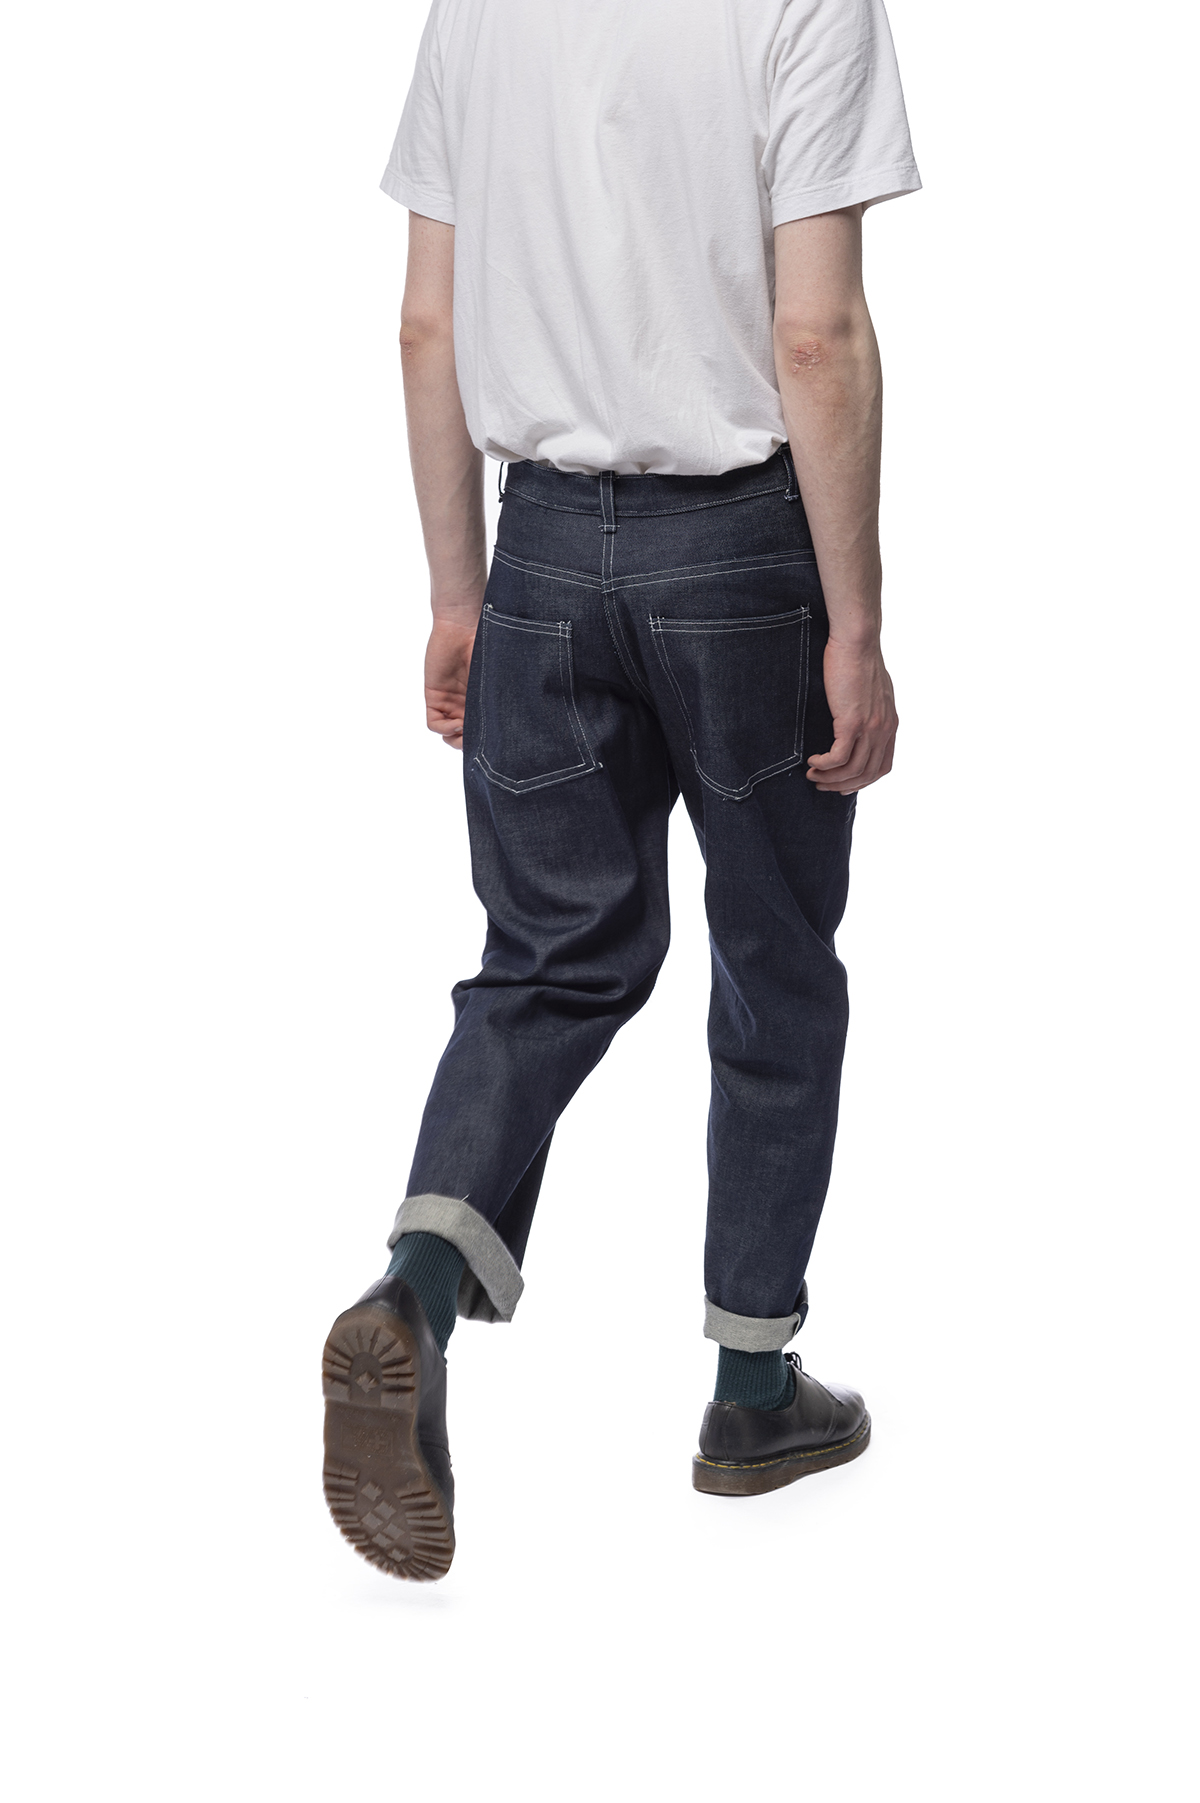 Functional clothing design of jeans that are rolled just above a model's ankles.